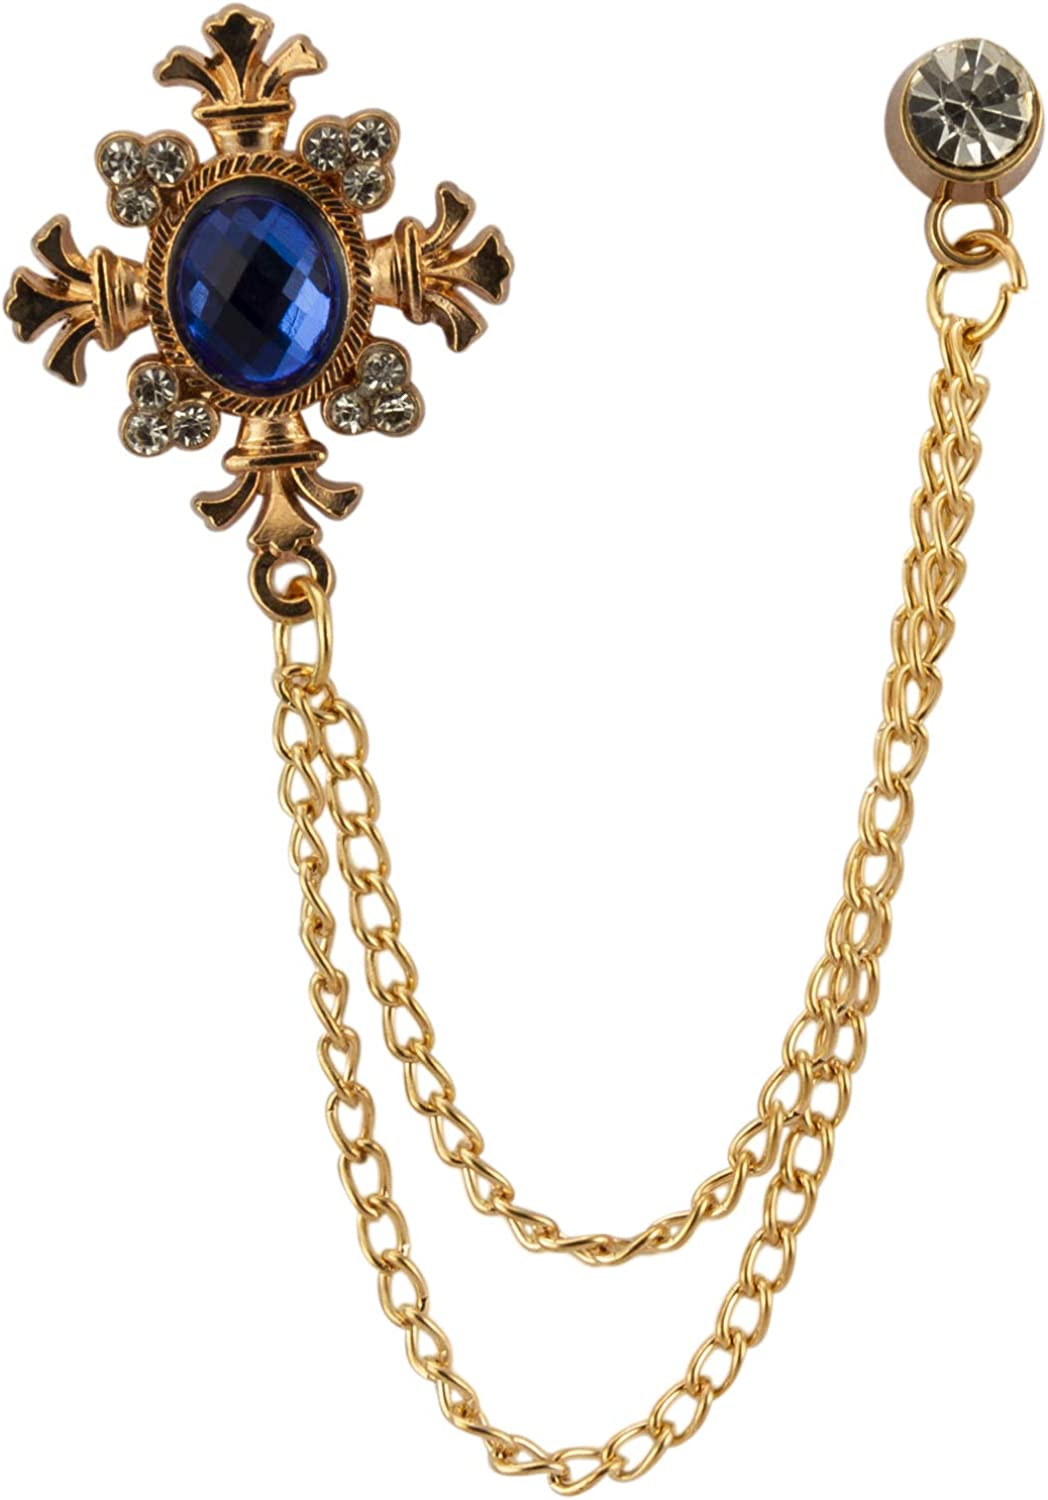 Knighthood Royal Blue Shimmer Stone with Rose Gold Engraving Hanging Chain and Swarovki Detailing Brooch Lapel Pin